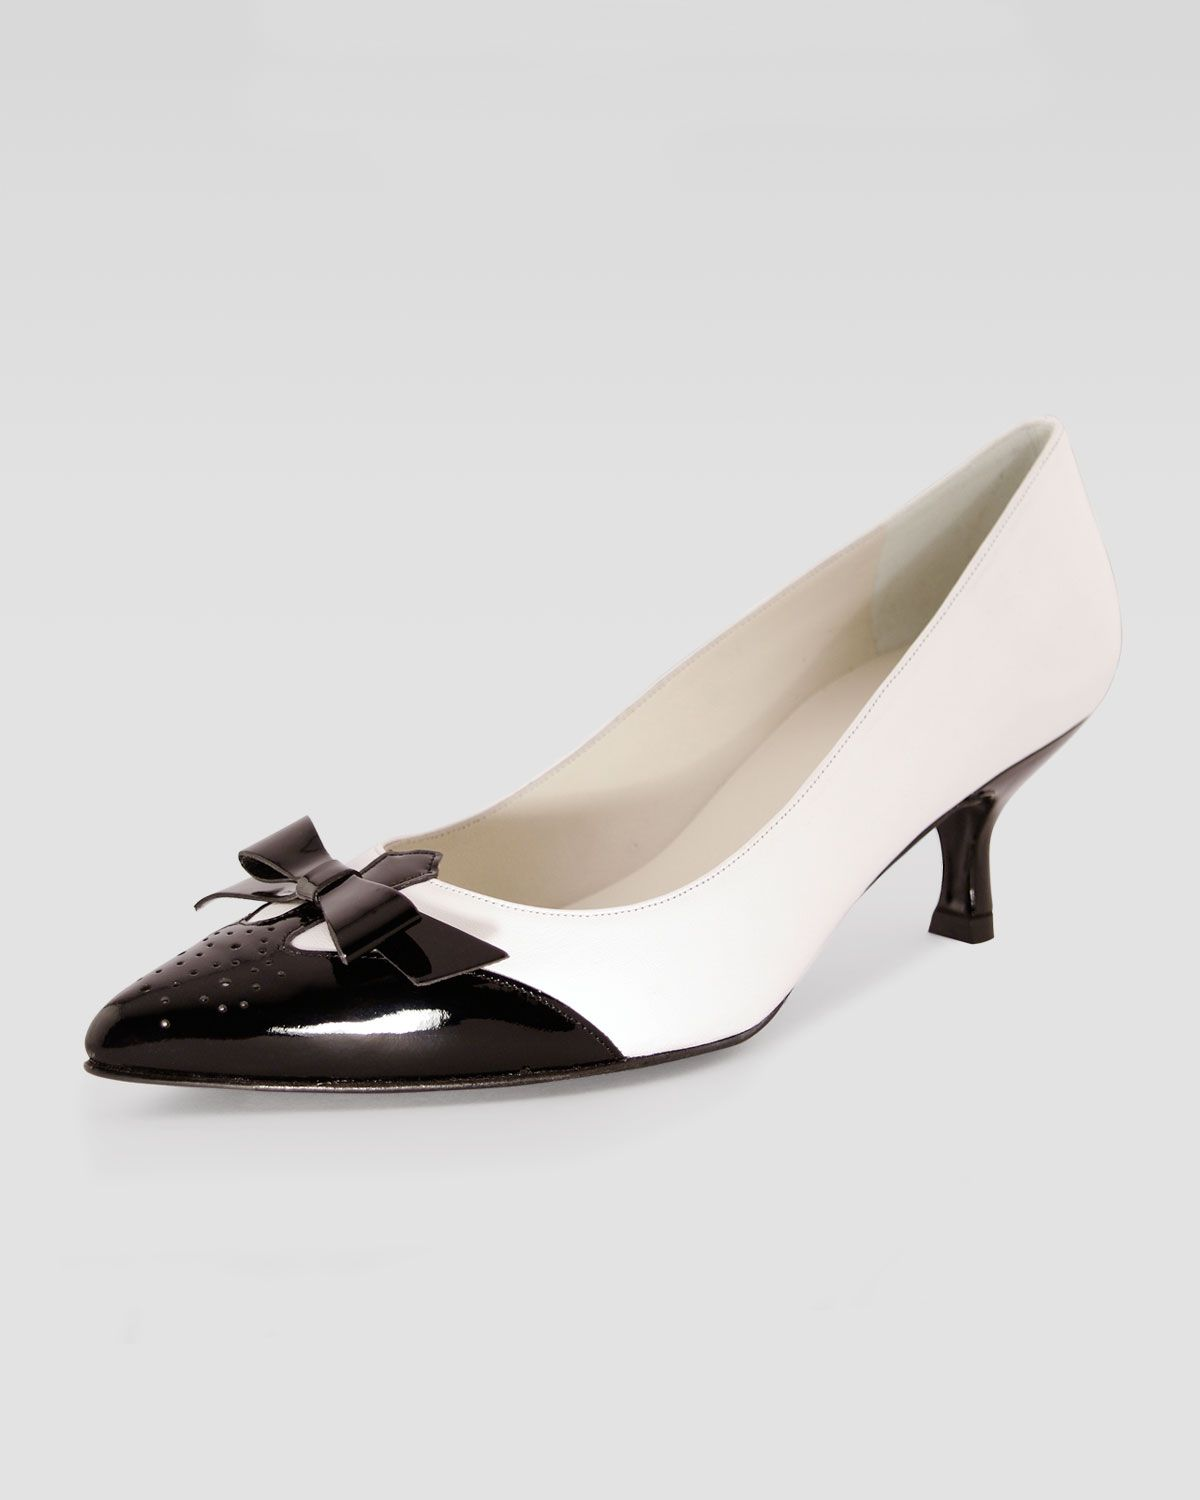 black and white kitten pumps | Shoes, Kitten heel shoes